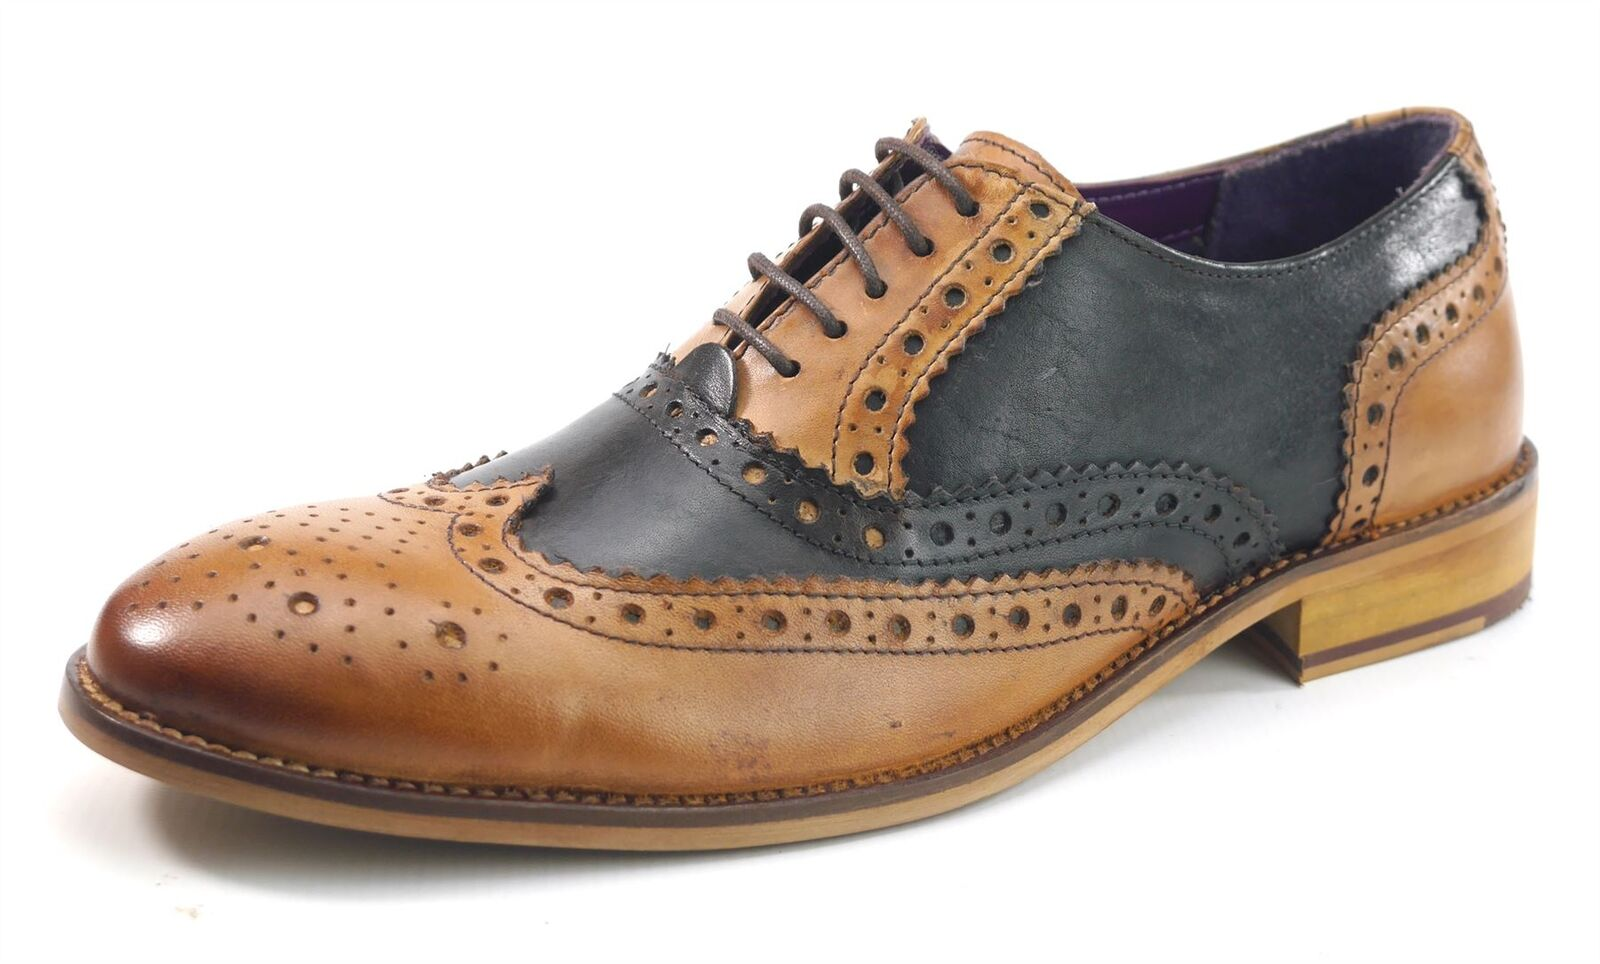 Frank James Redford Brogues Lace Up Formal Mens Leather Shoes Tan / Brown